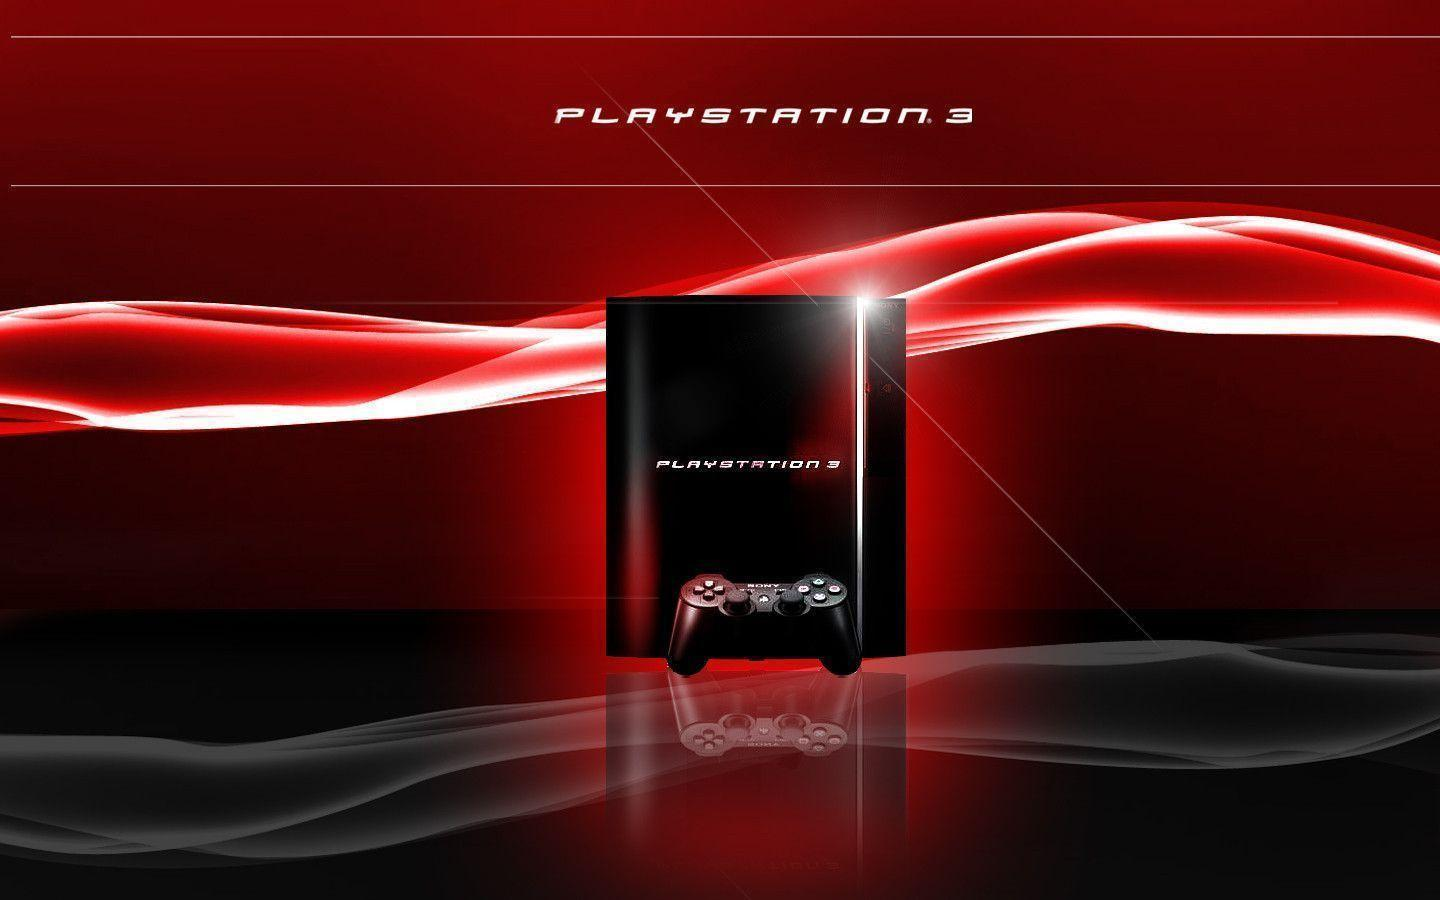 wallpaper ps3 wallpapers background - photo #49